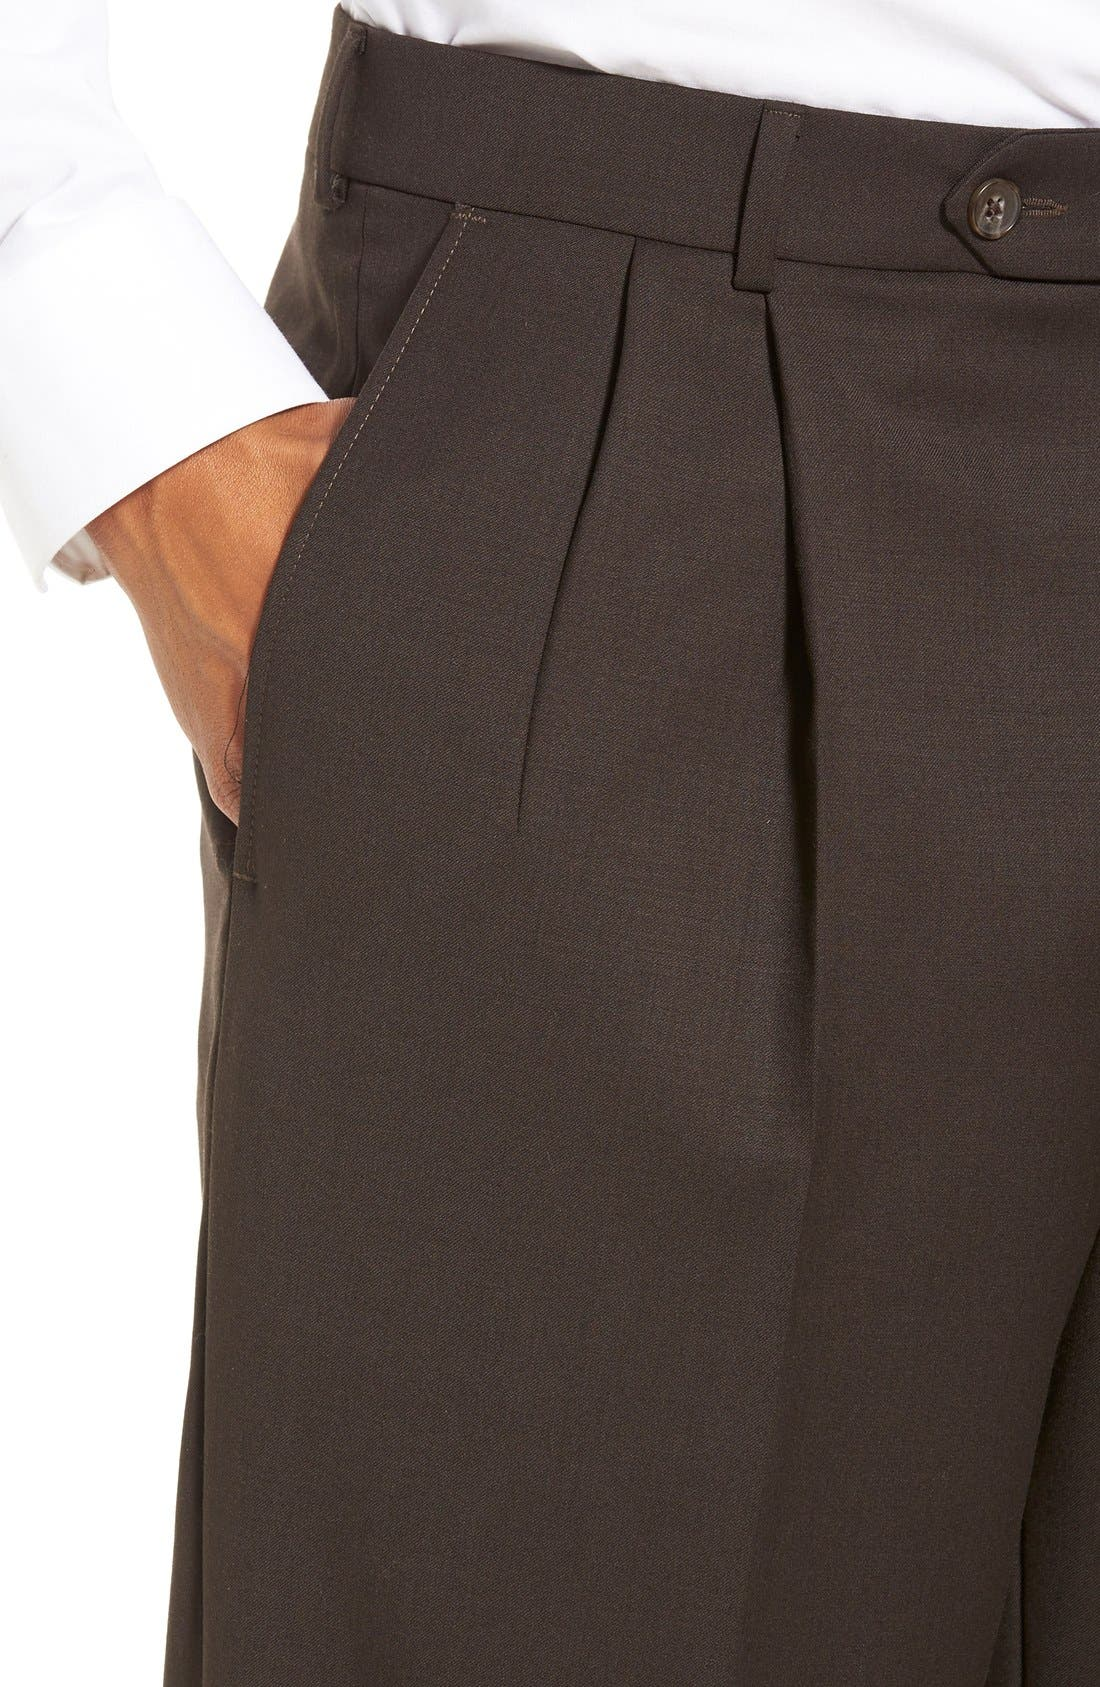 Pleated Solid Wool Trousers,                             Alternate thumbnail 46, color,